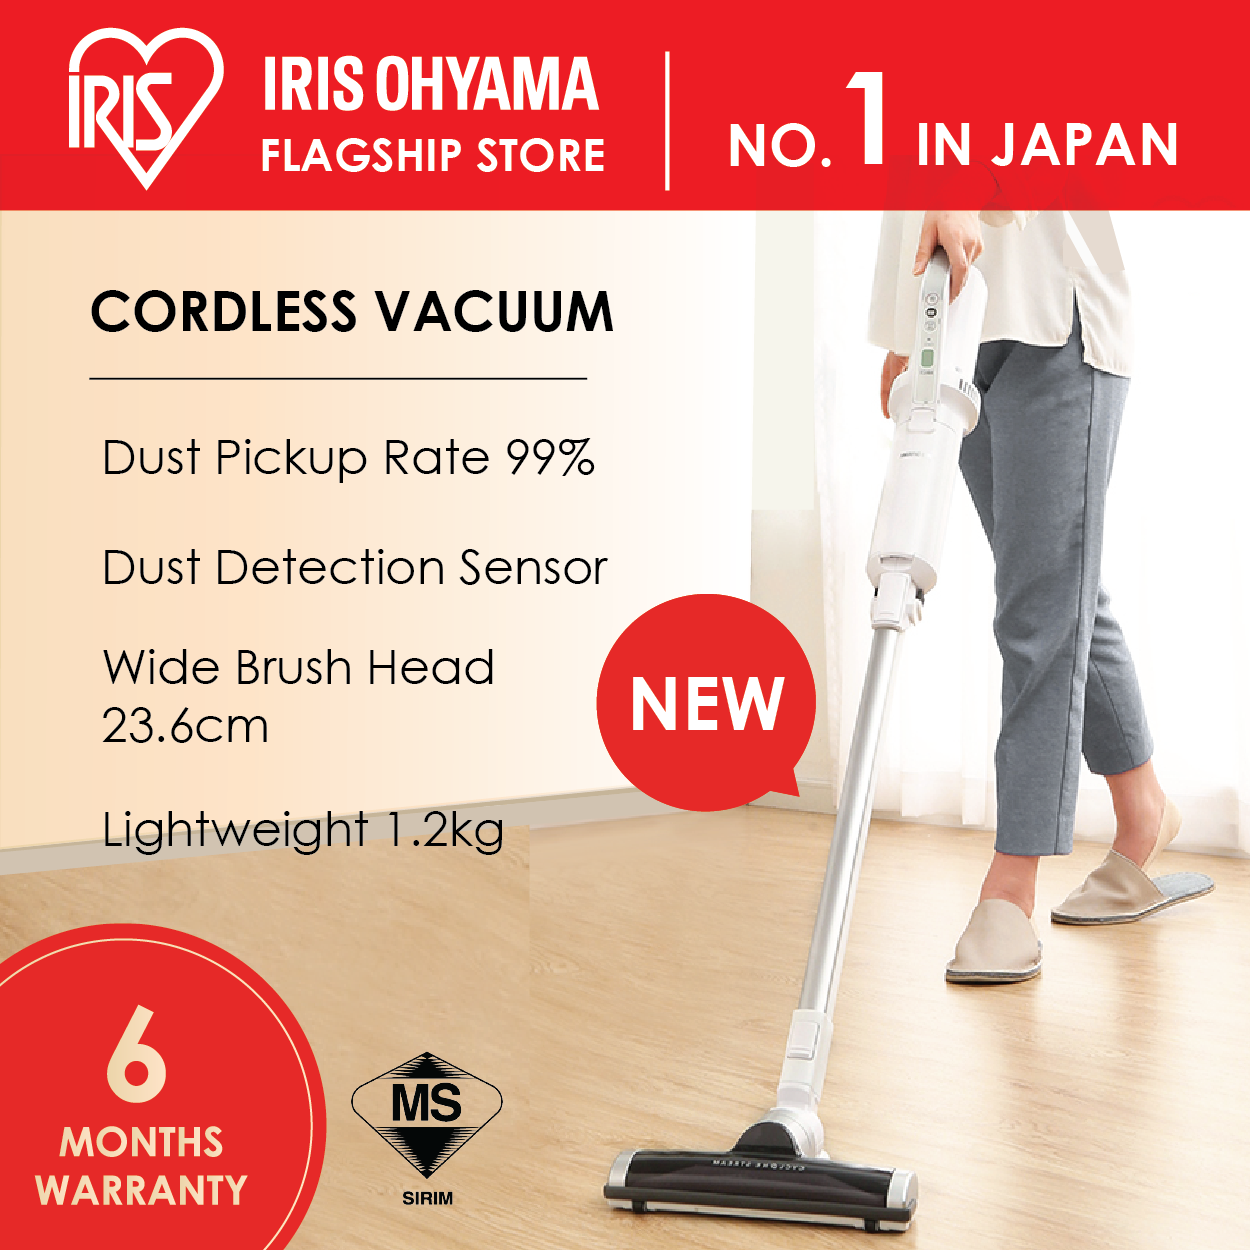 IRIS OHYAMA IC-SLDC8 Cordless Vacuum Cleaner (6 Months Warranty)